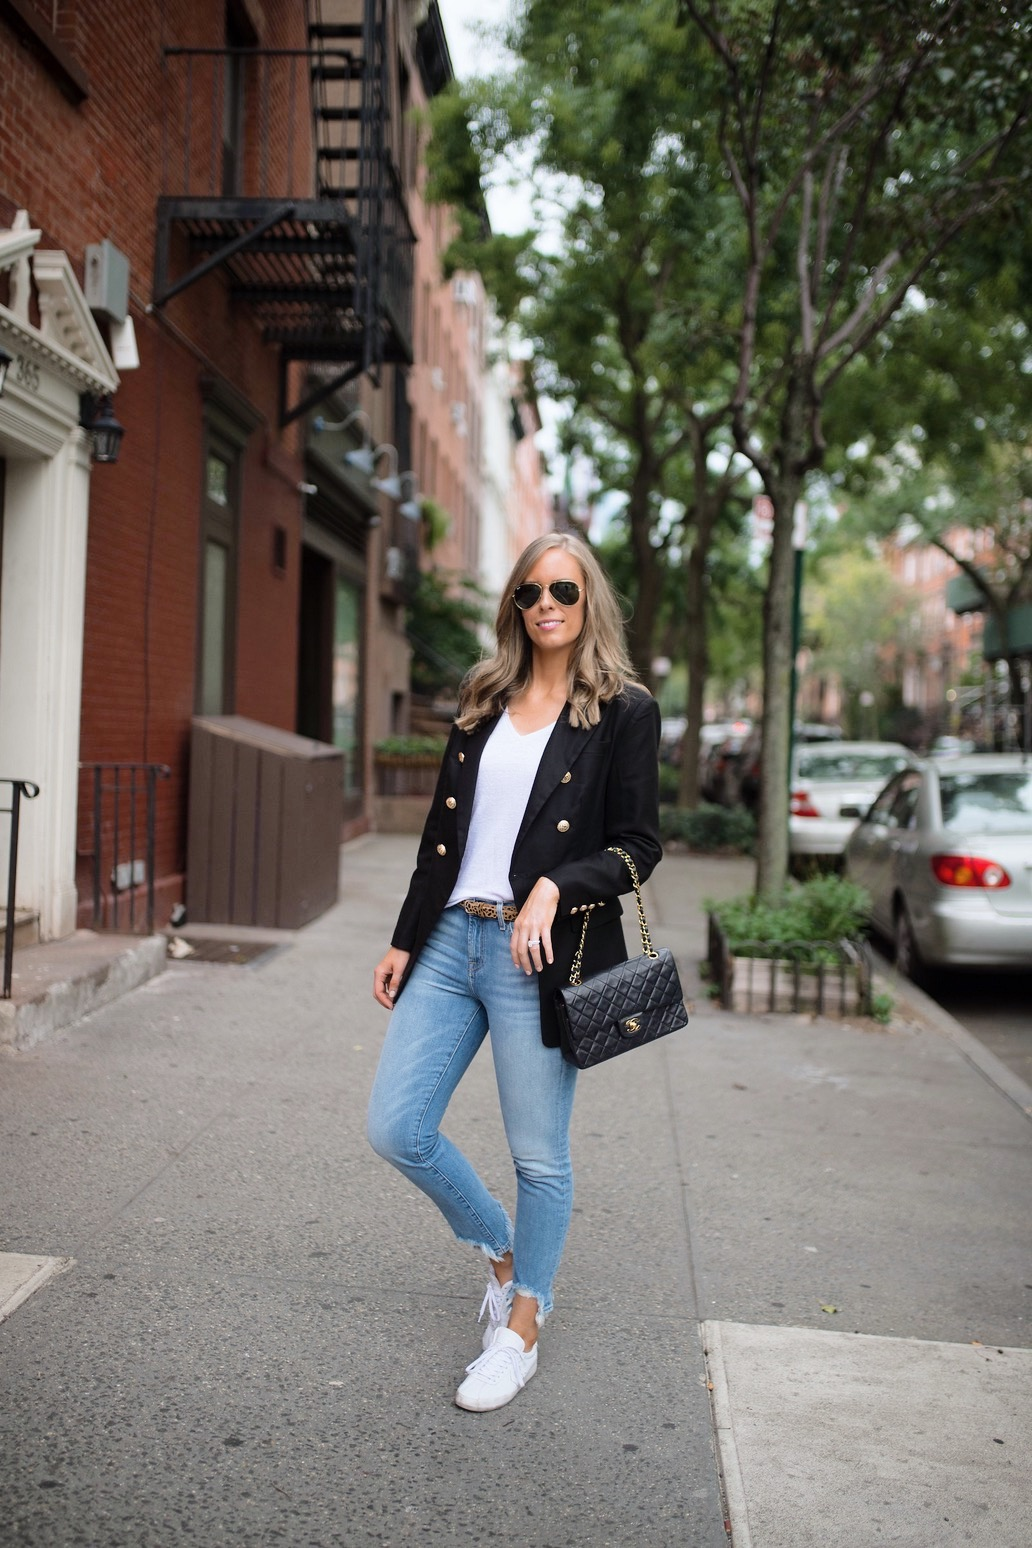 casual-outfit-ideas-blue-distressed-jeans-white-sneakers-balmain-blazer-chanel-bag-fashion-blogger-new-york-street-style-outfit-lauren-slade-style-elixir-blog-6